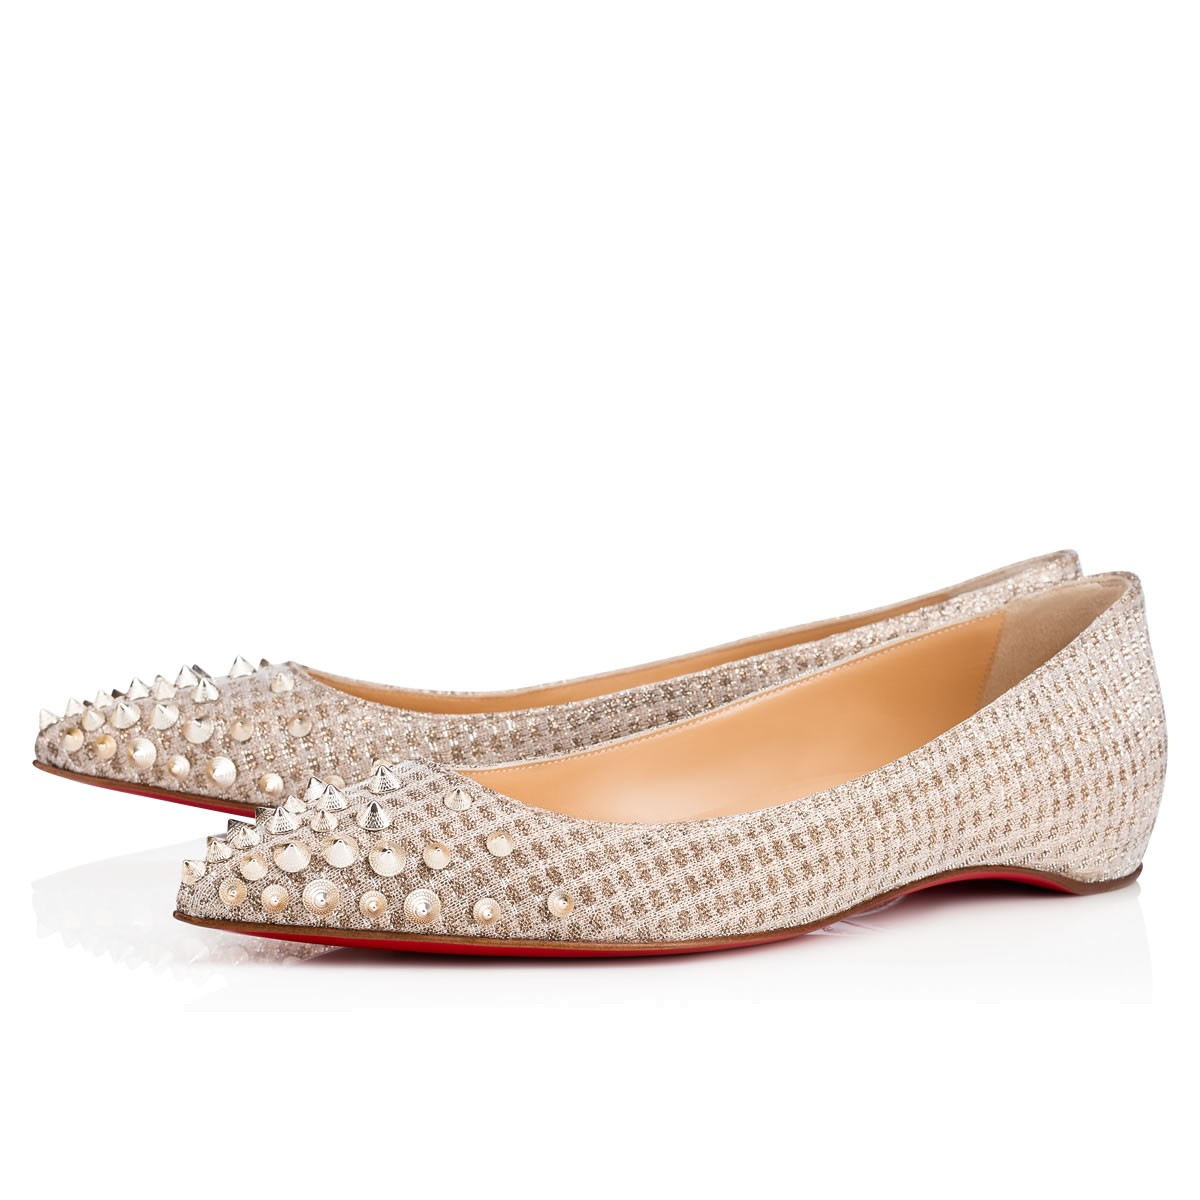 f94f58b69de SPIKYSHELL FLAT NUDE WHITE GOLD Fabric - Women Shoes ...